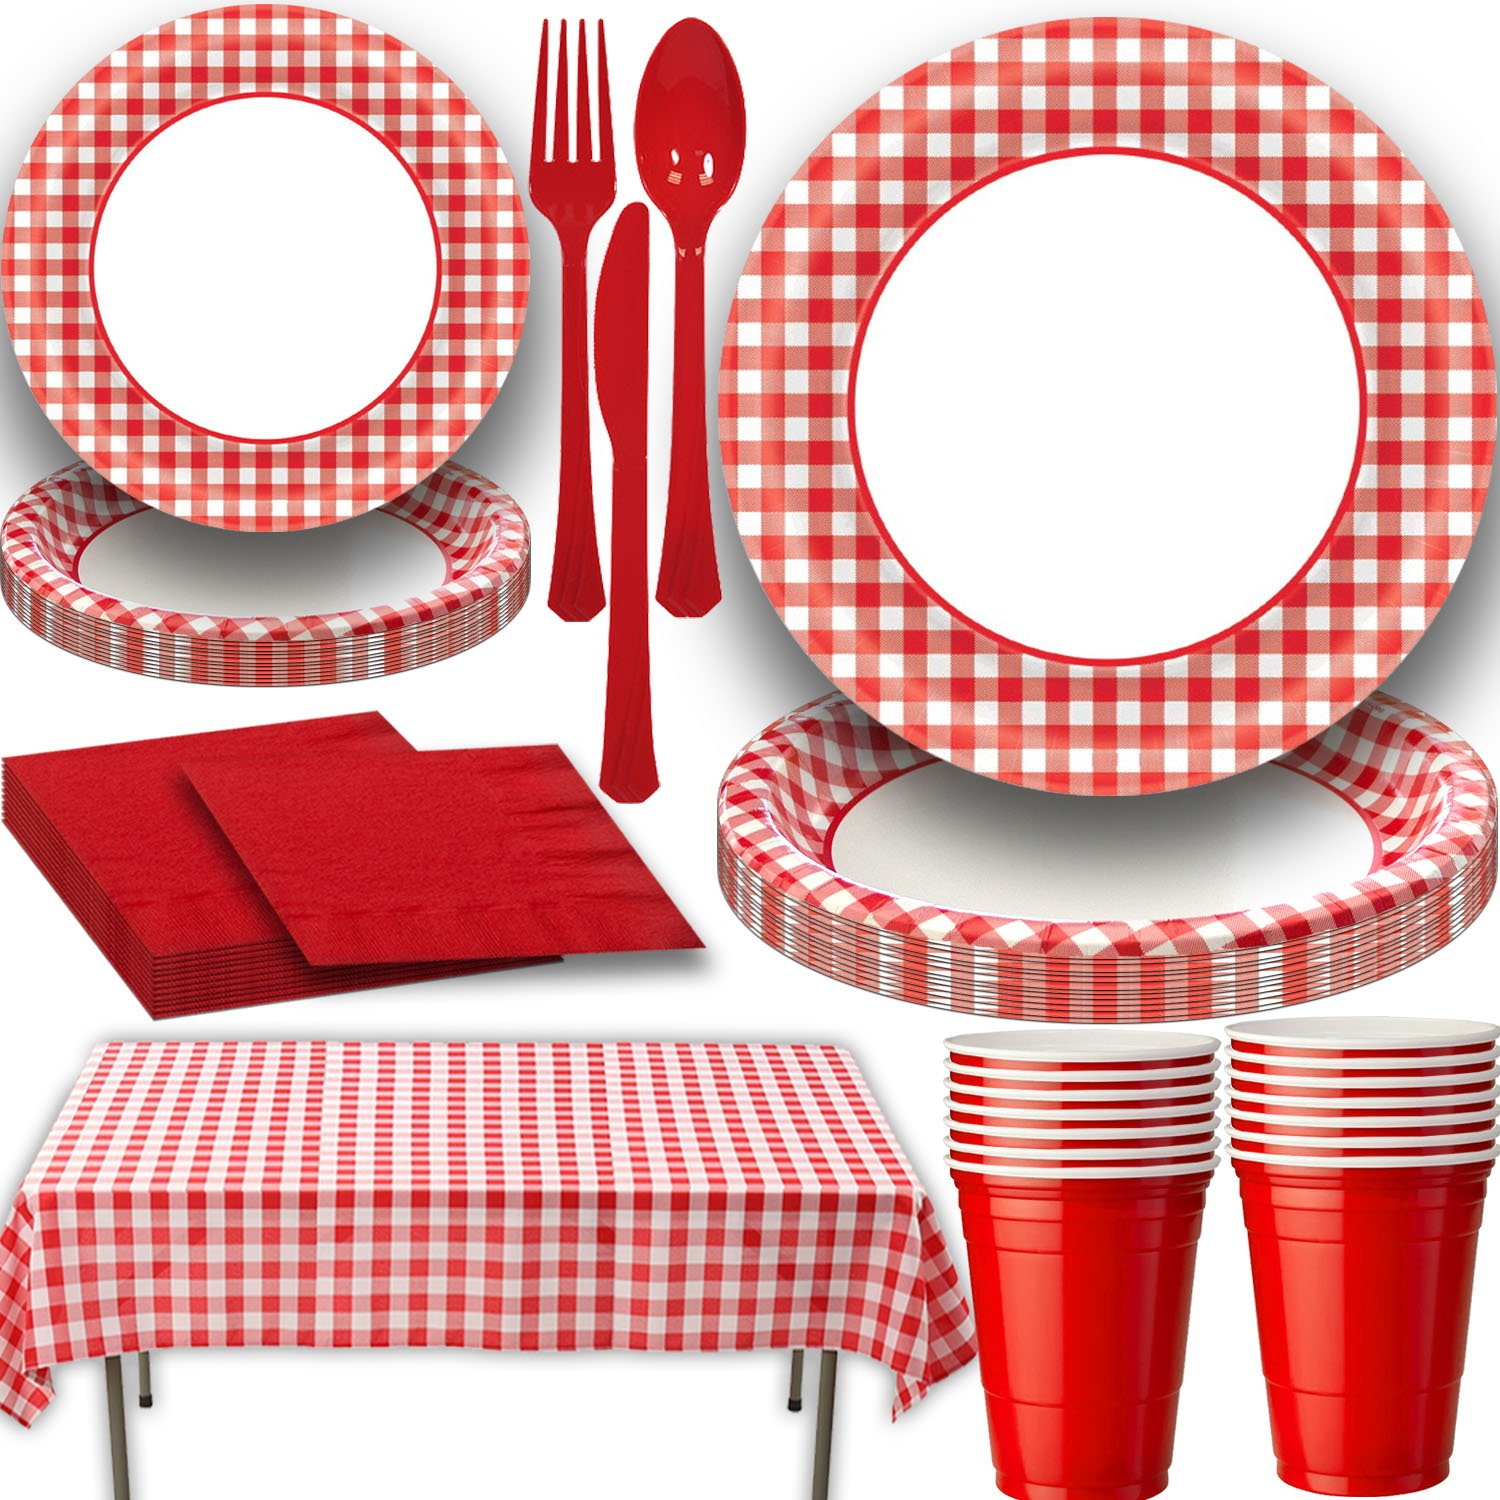 durable service Picnic Party Supply Set for 16. Includes Classic Red Gingham Plastic Tablecloth  sc 1 st  Project World School Family Summit & durable service Picnic Party Supply Set for 16. Includes Classic Red ...